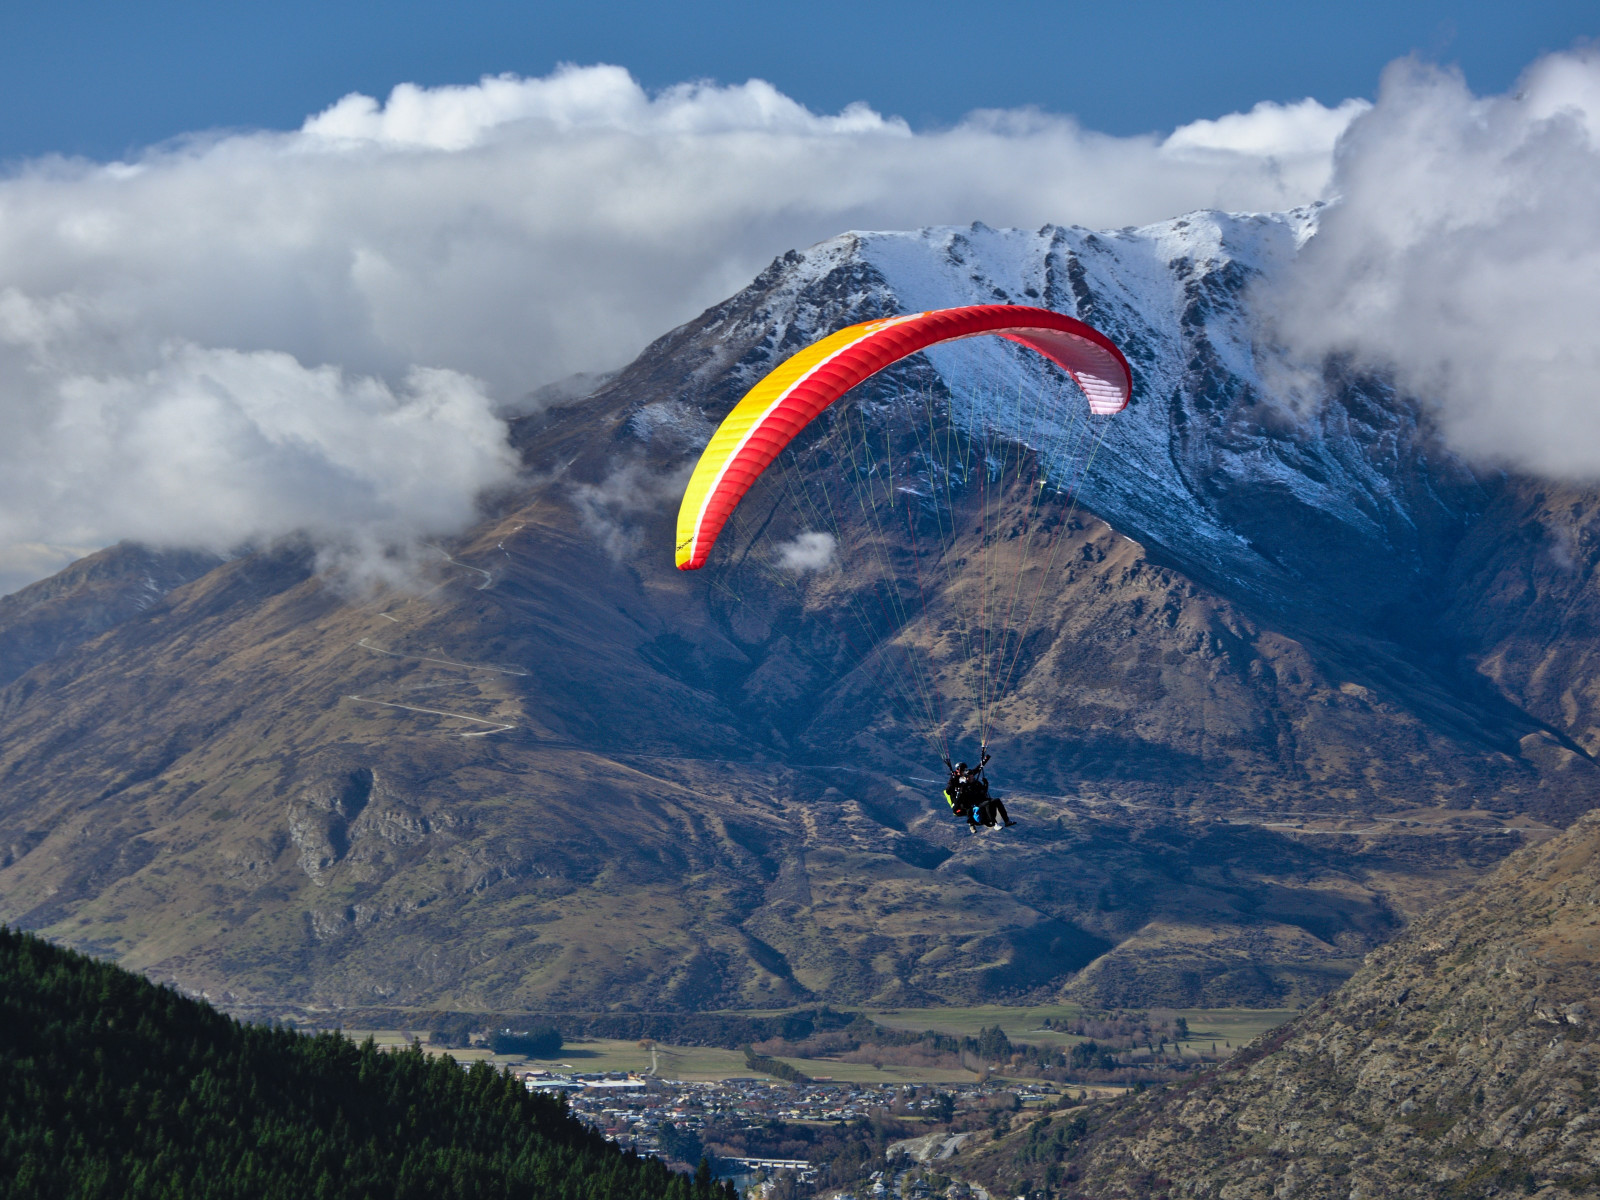 Paraglider up in the sky wallpaper 1600x1200